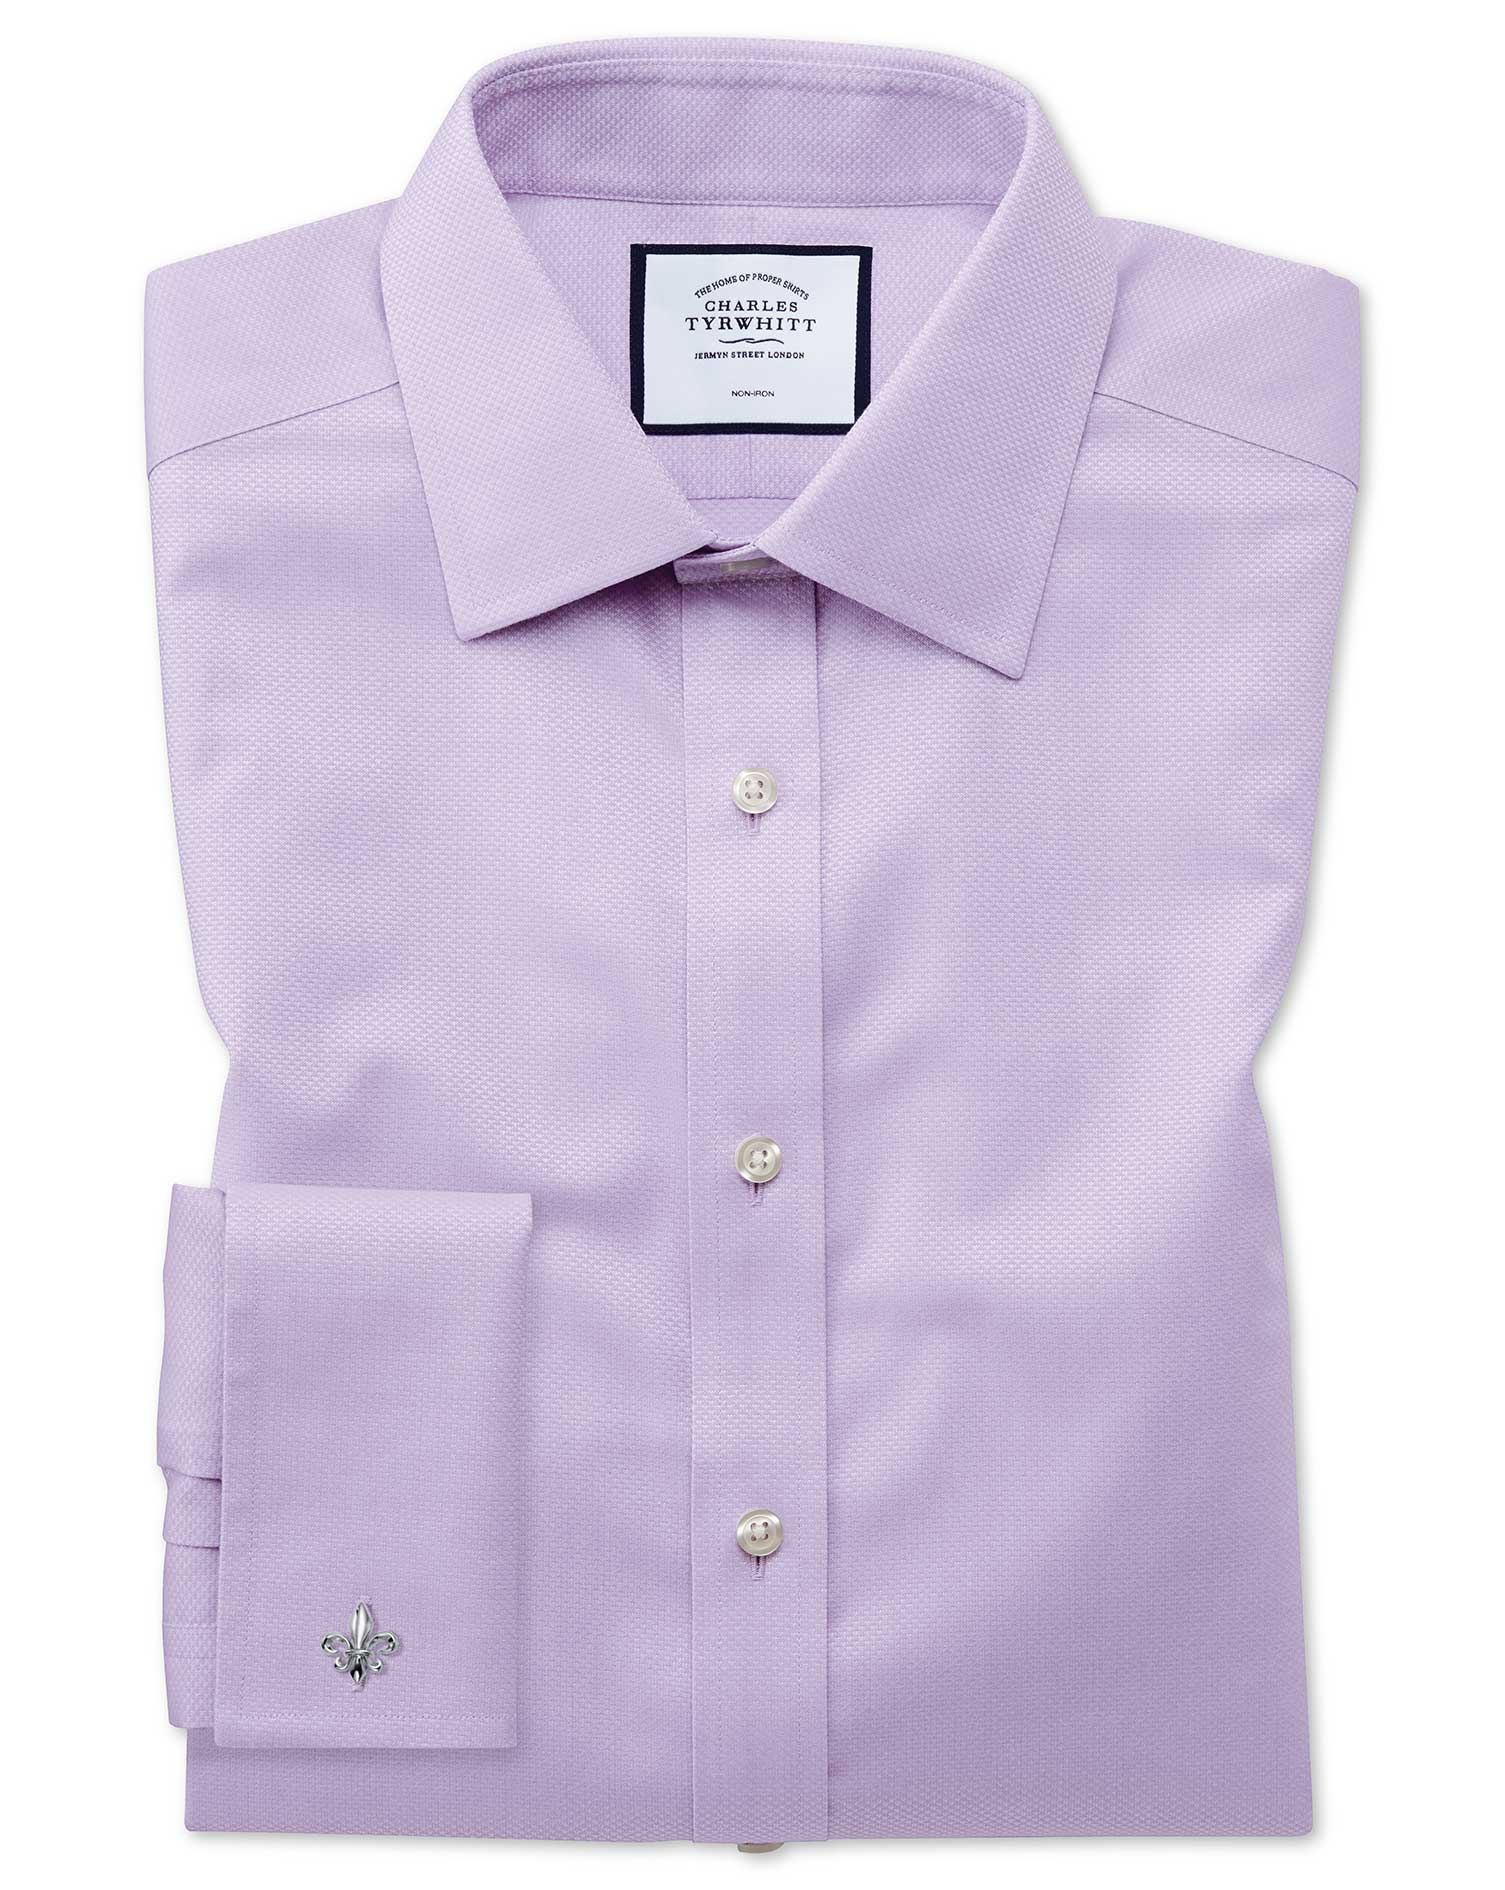 Slim Fit Non-Iron Lilac Triangle Weave Cotton Formal Shirt Single Cuff Size 17/34 by Charles Tyrwhit